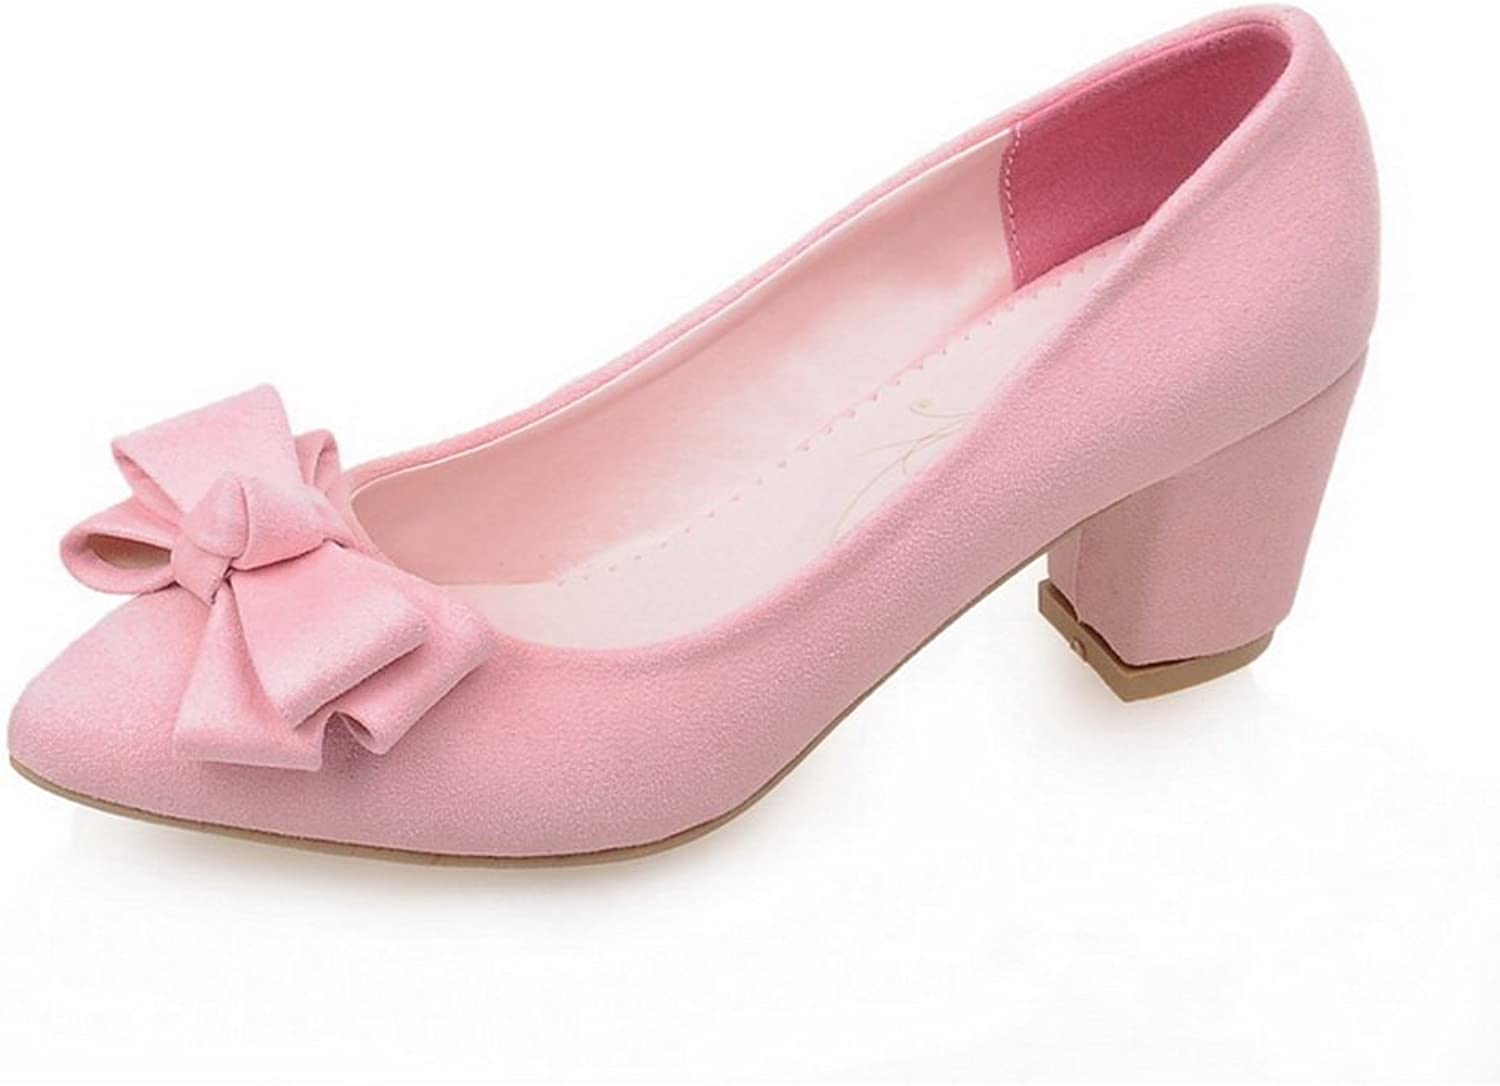 BalaMasa Ladies Bows Chunky Heels Pointed-Toe Suede Pumps shoes